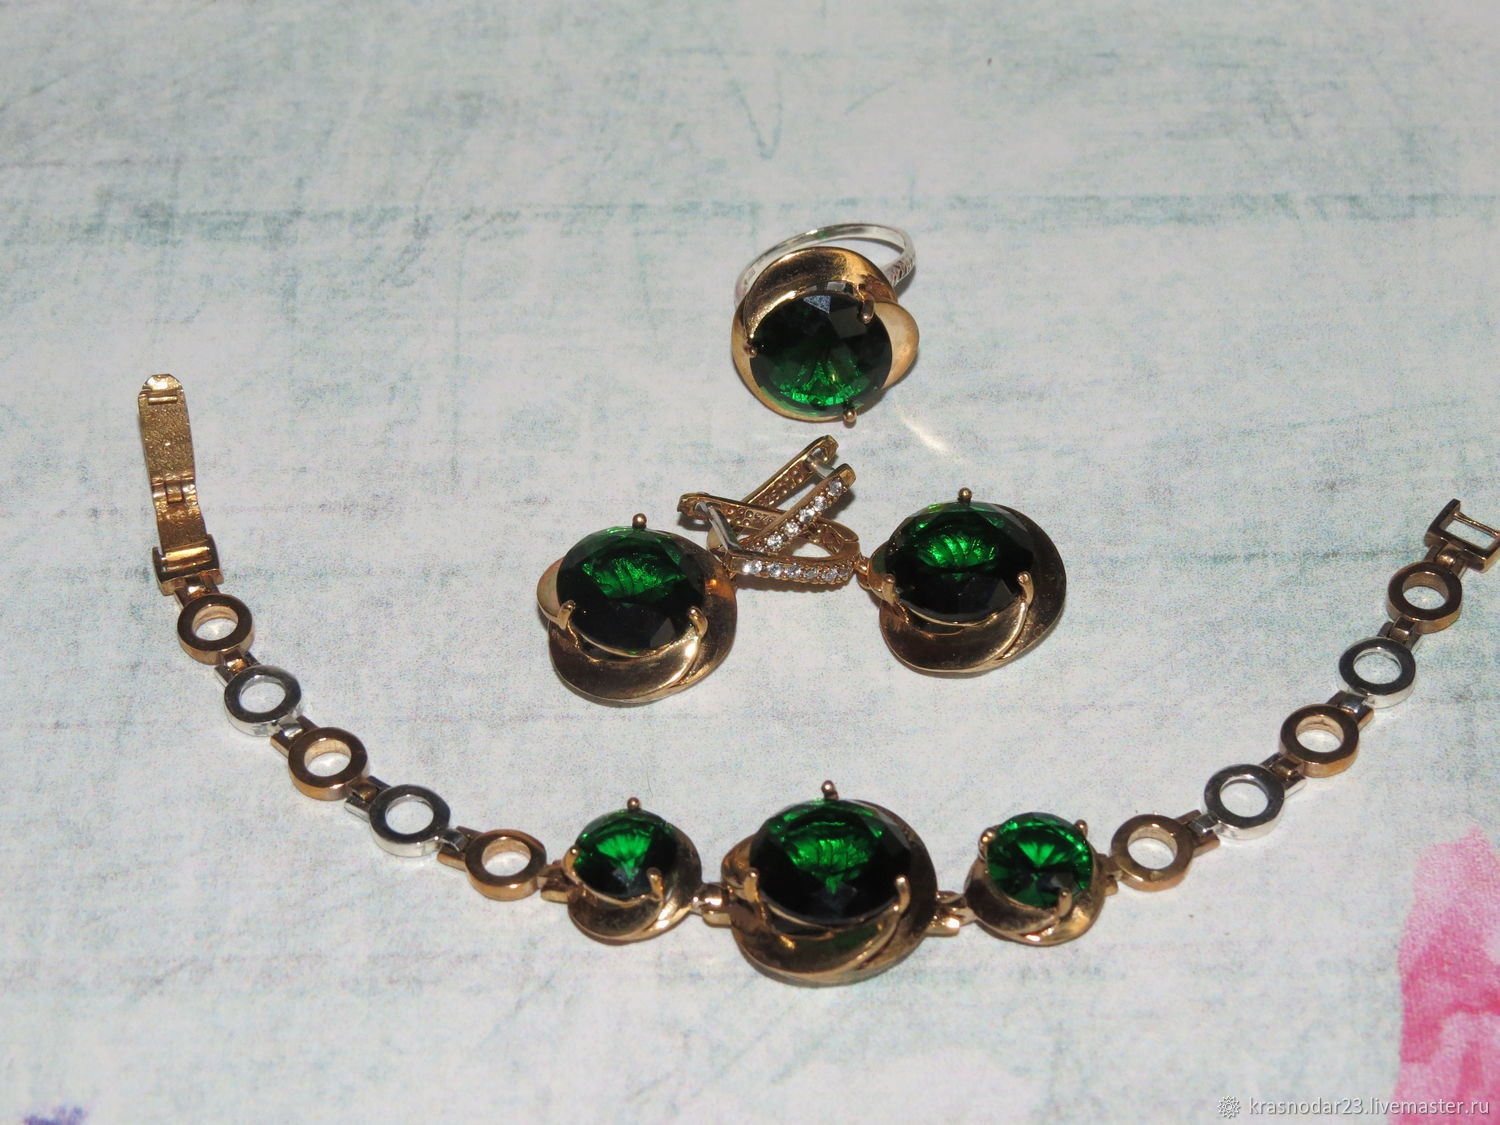 A set of 925 sterling SILVER with 24 carat gold plated embellished with quartz bright emerald green and zircons.